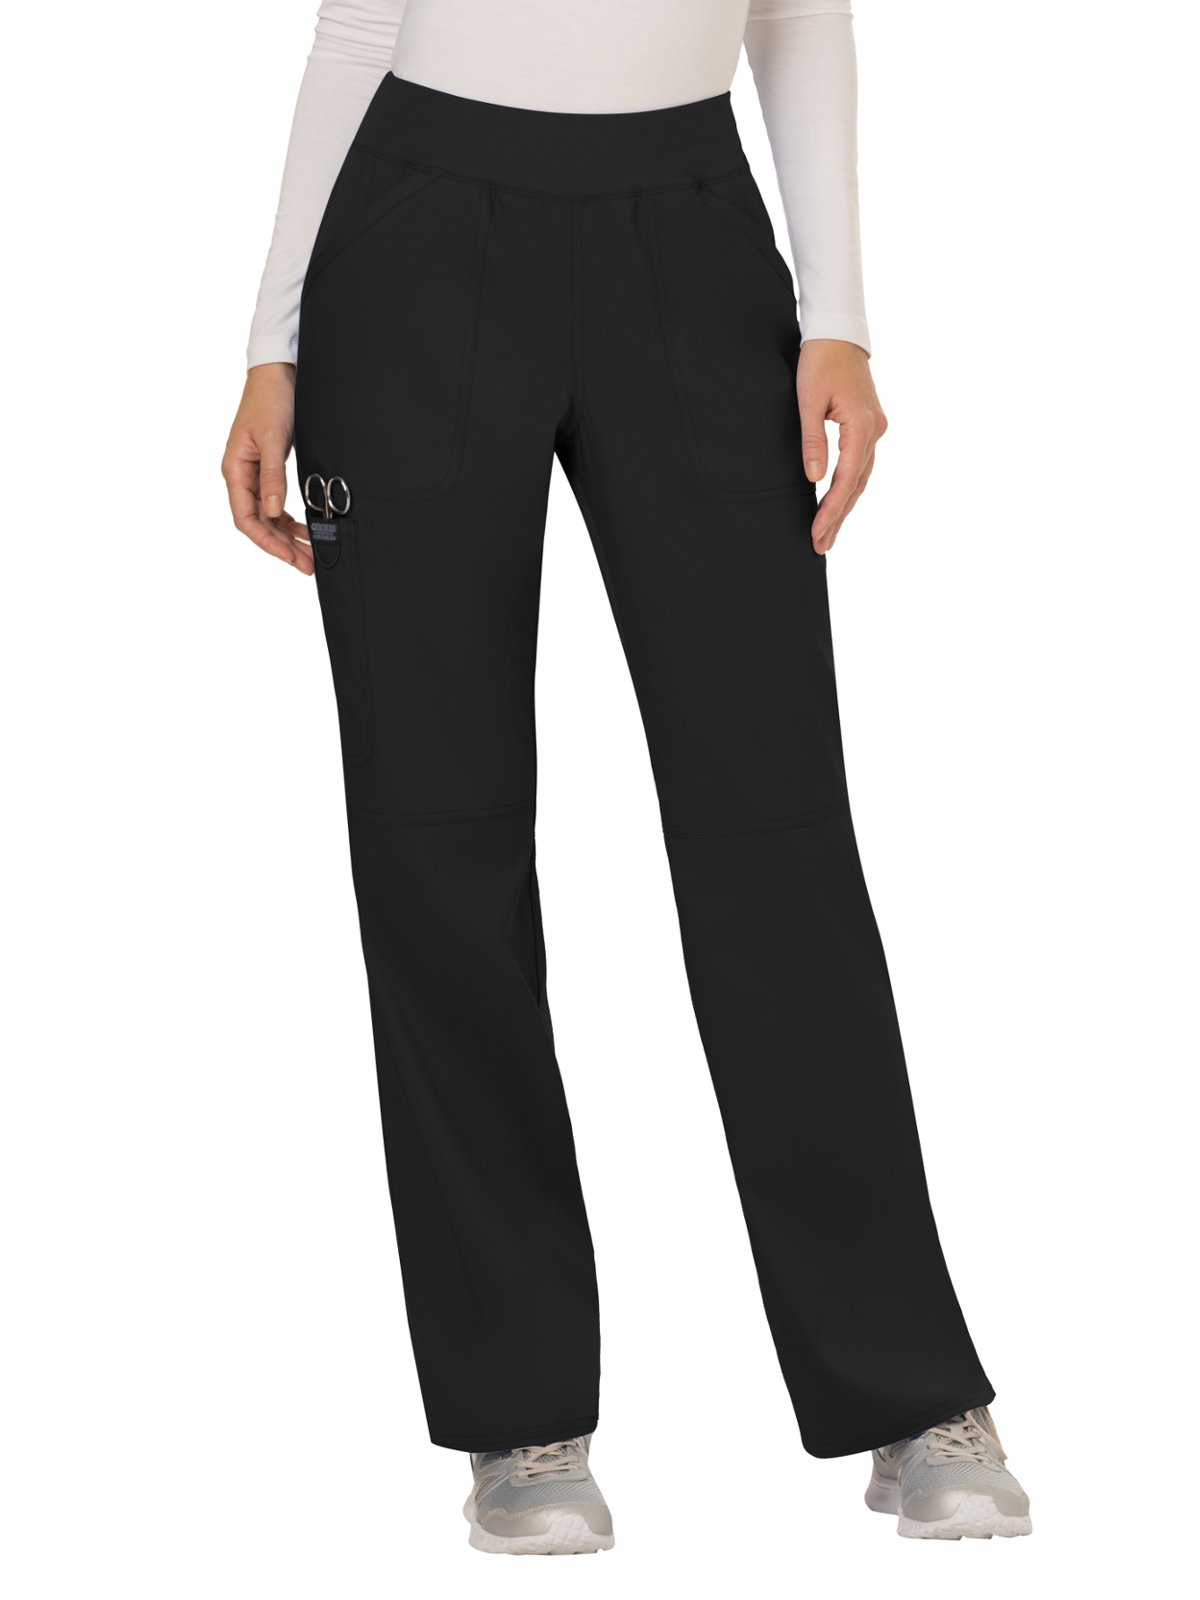 WW Revolution by Cherokee Women's Mid Rise Straight Leg Pull-on Pant, Black, S